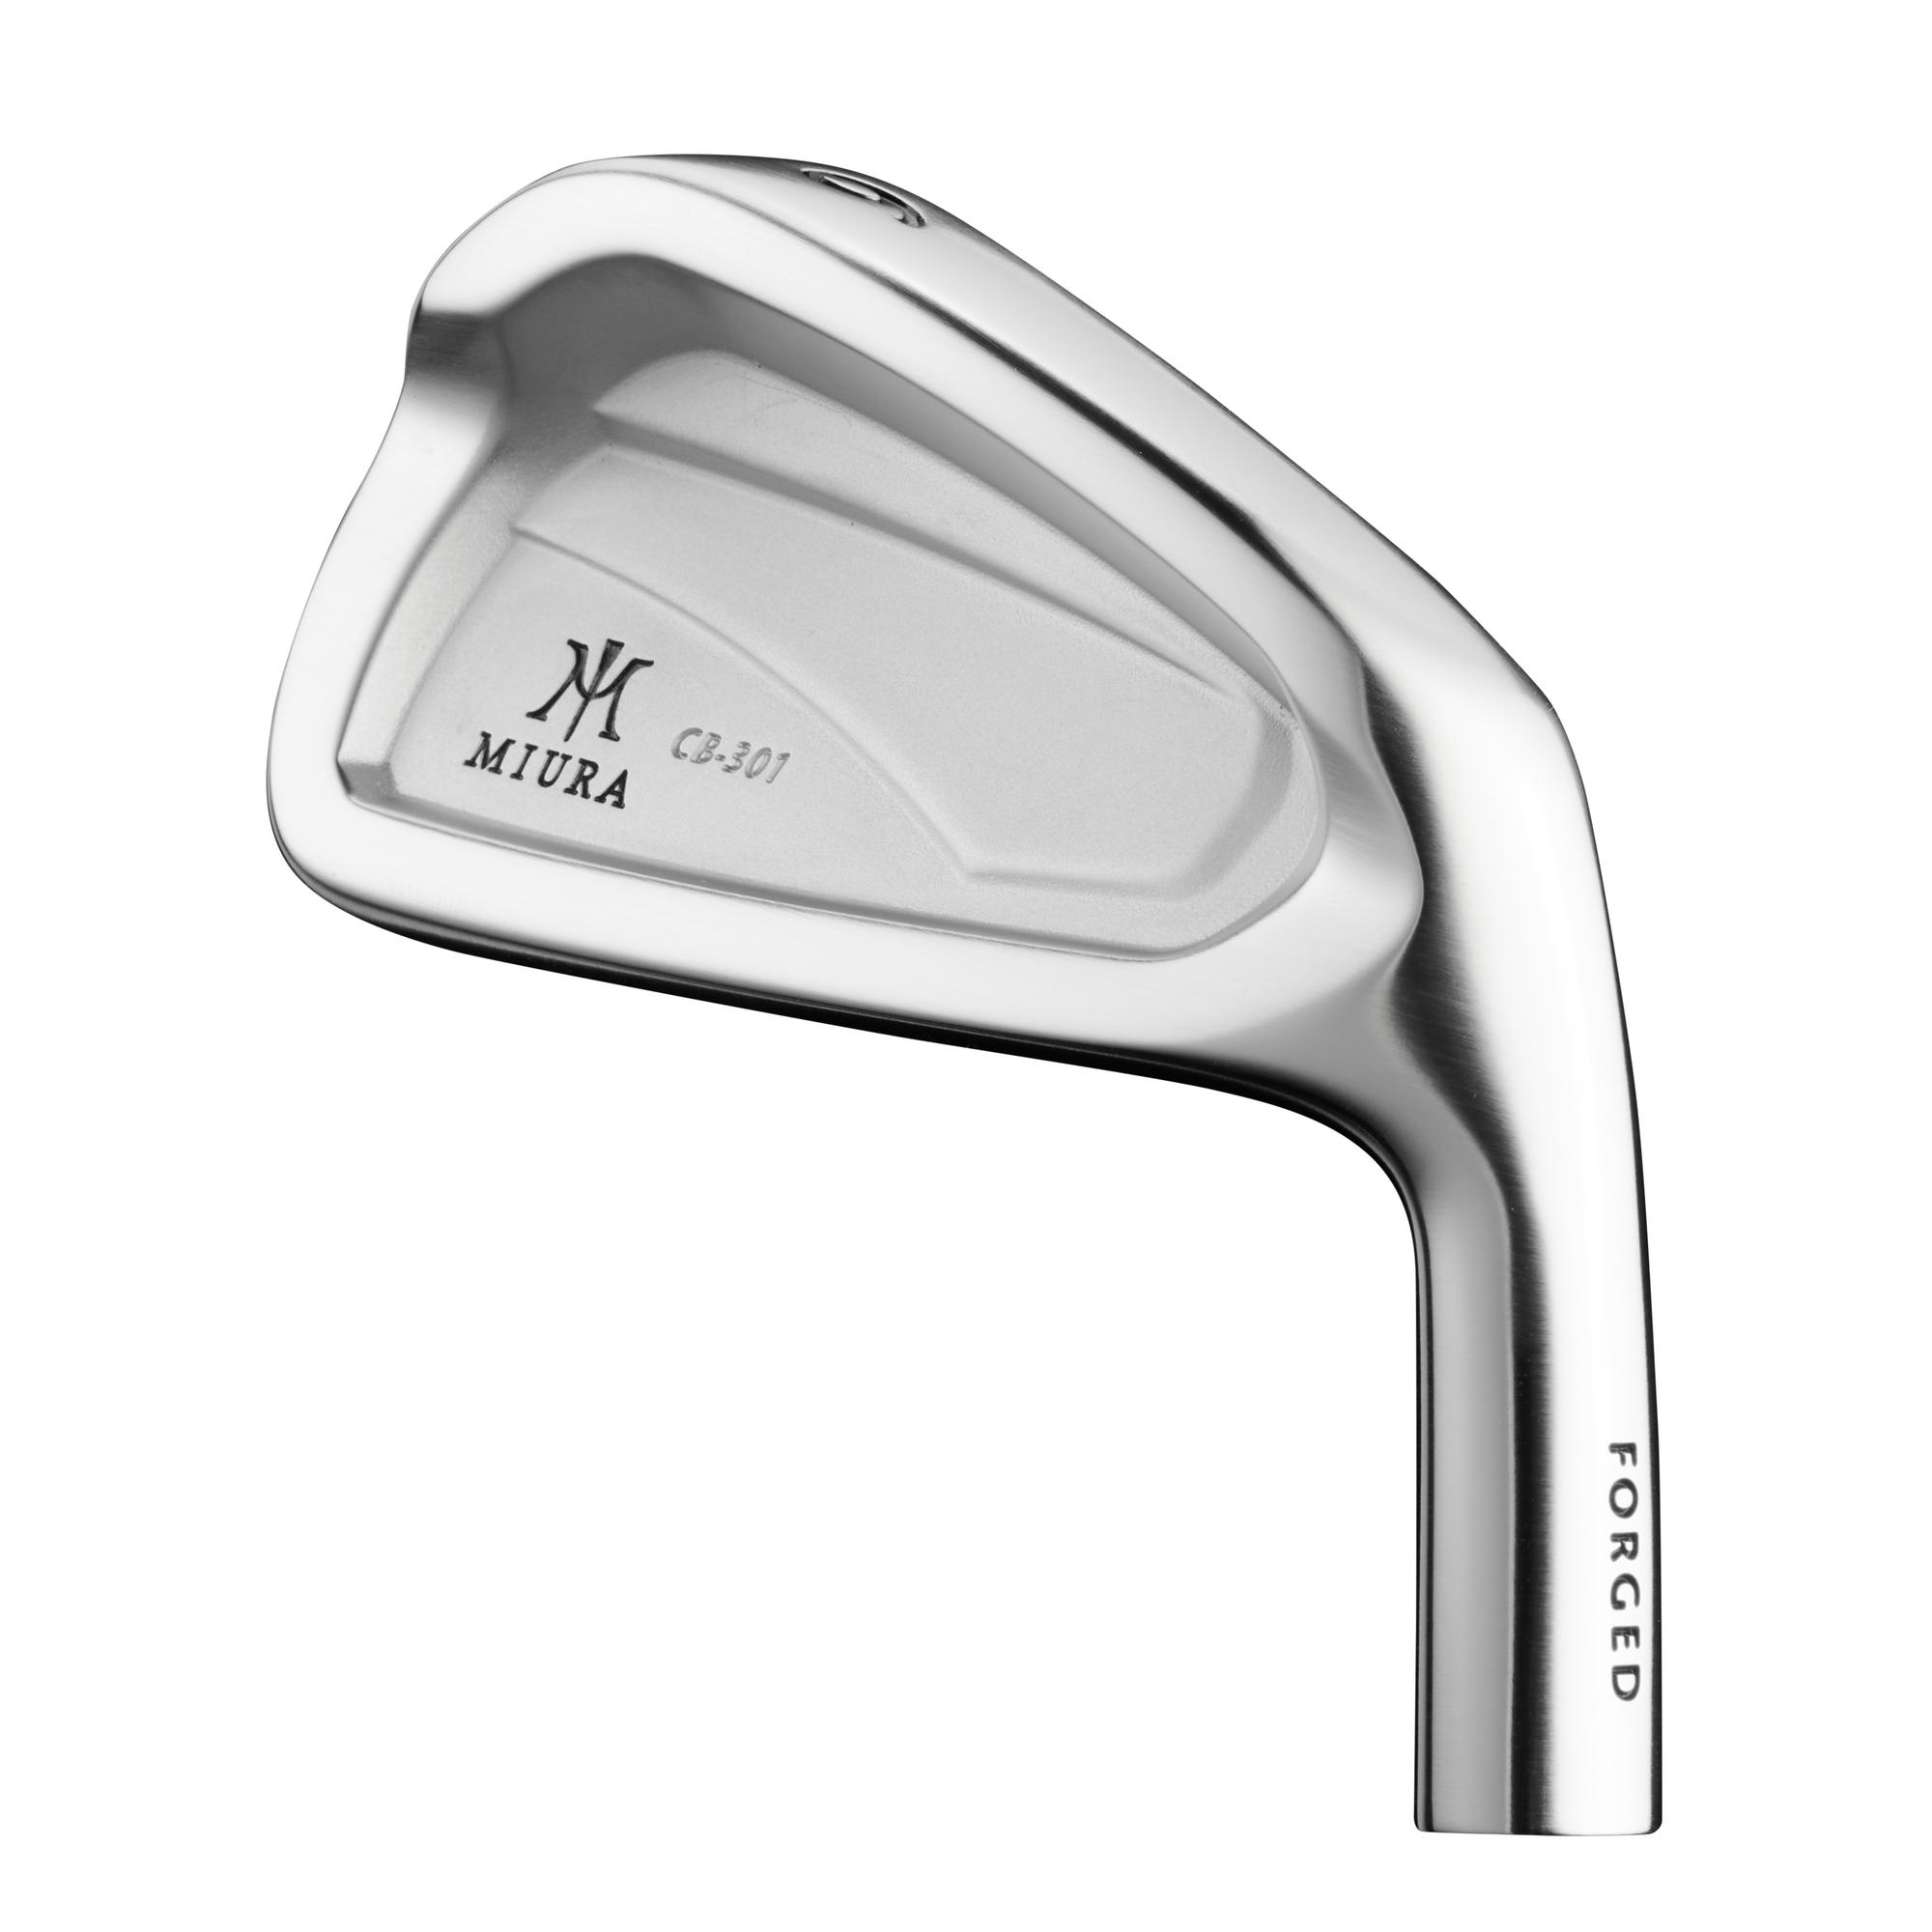 CB-301 4-PW Iron Set with Steel Shafts